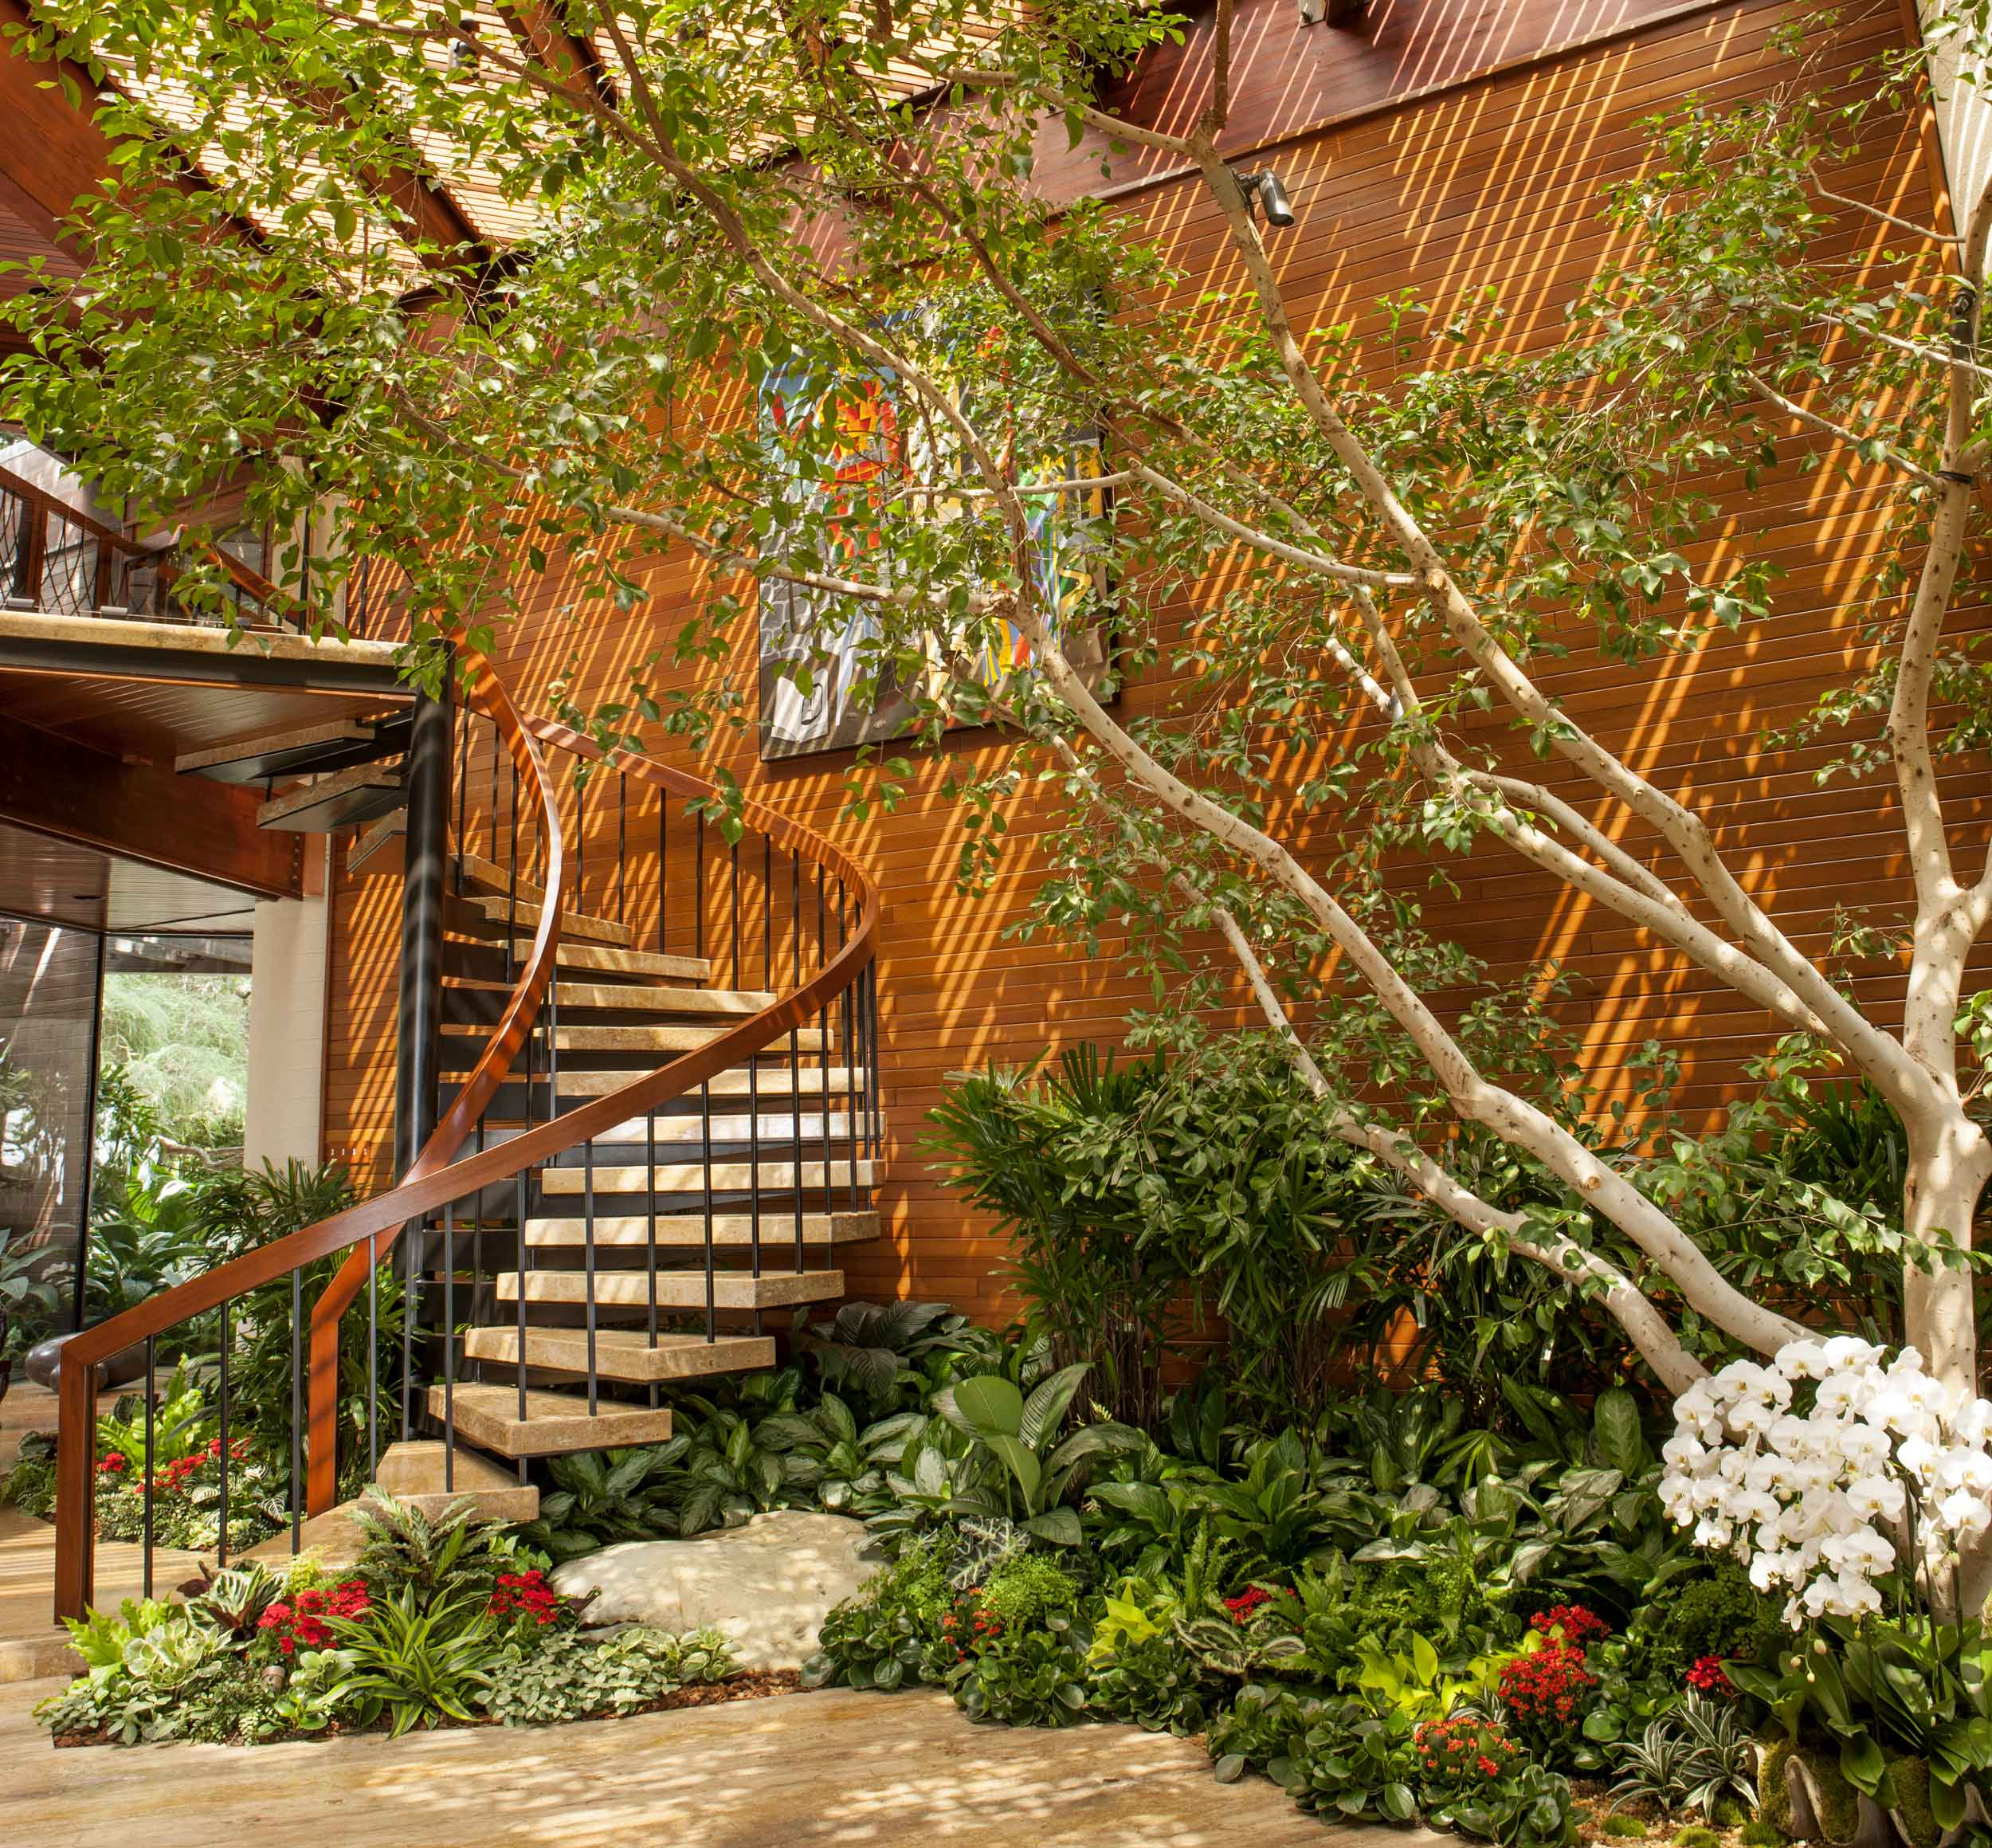 Another sweeping vertical view of the main floor illustrates how the natural light fosters an indoor arboretum.